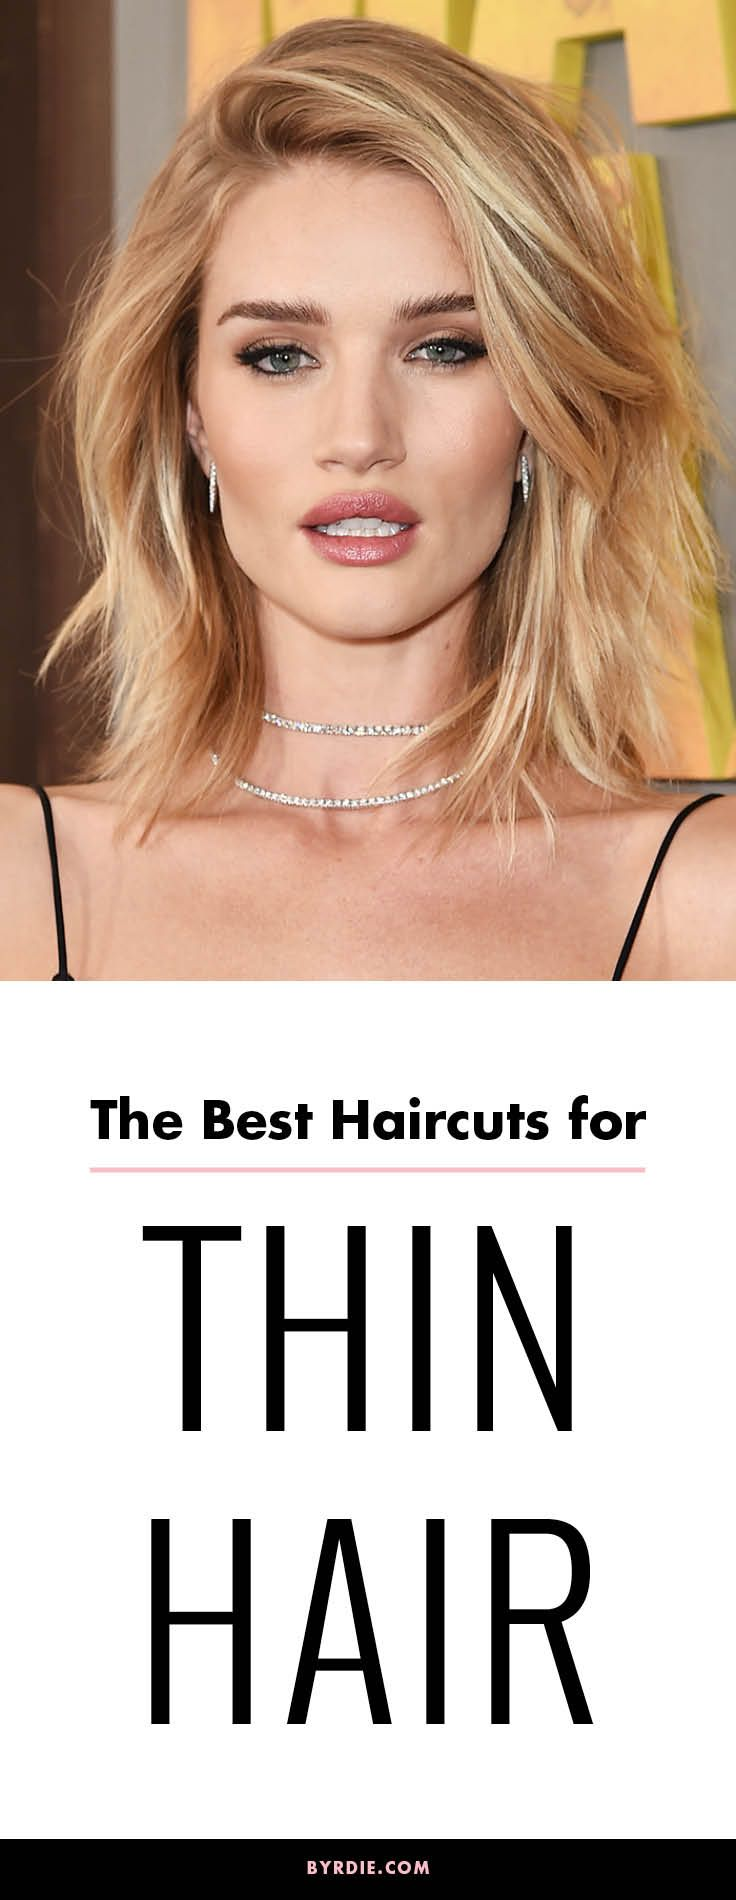 it's official: these are the all-time best haircuts for thin hair